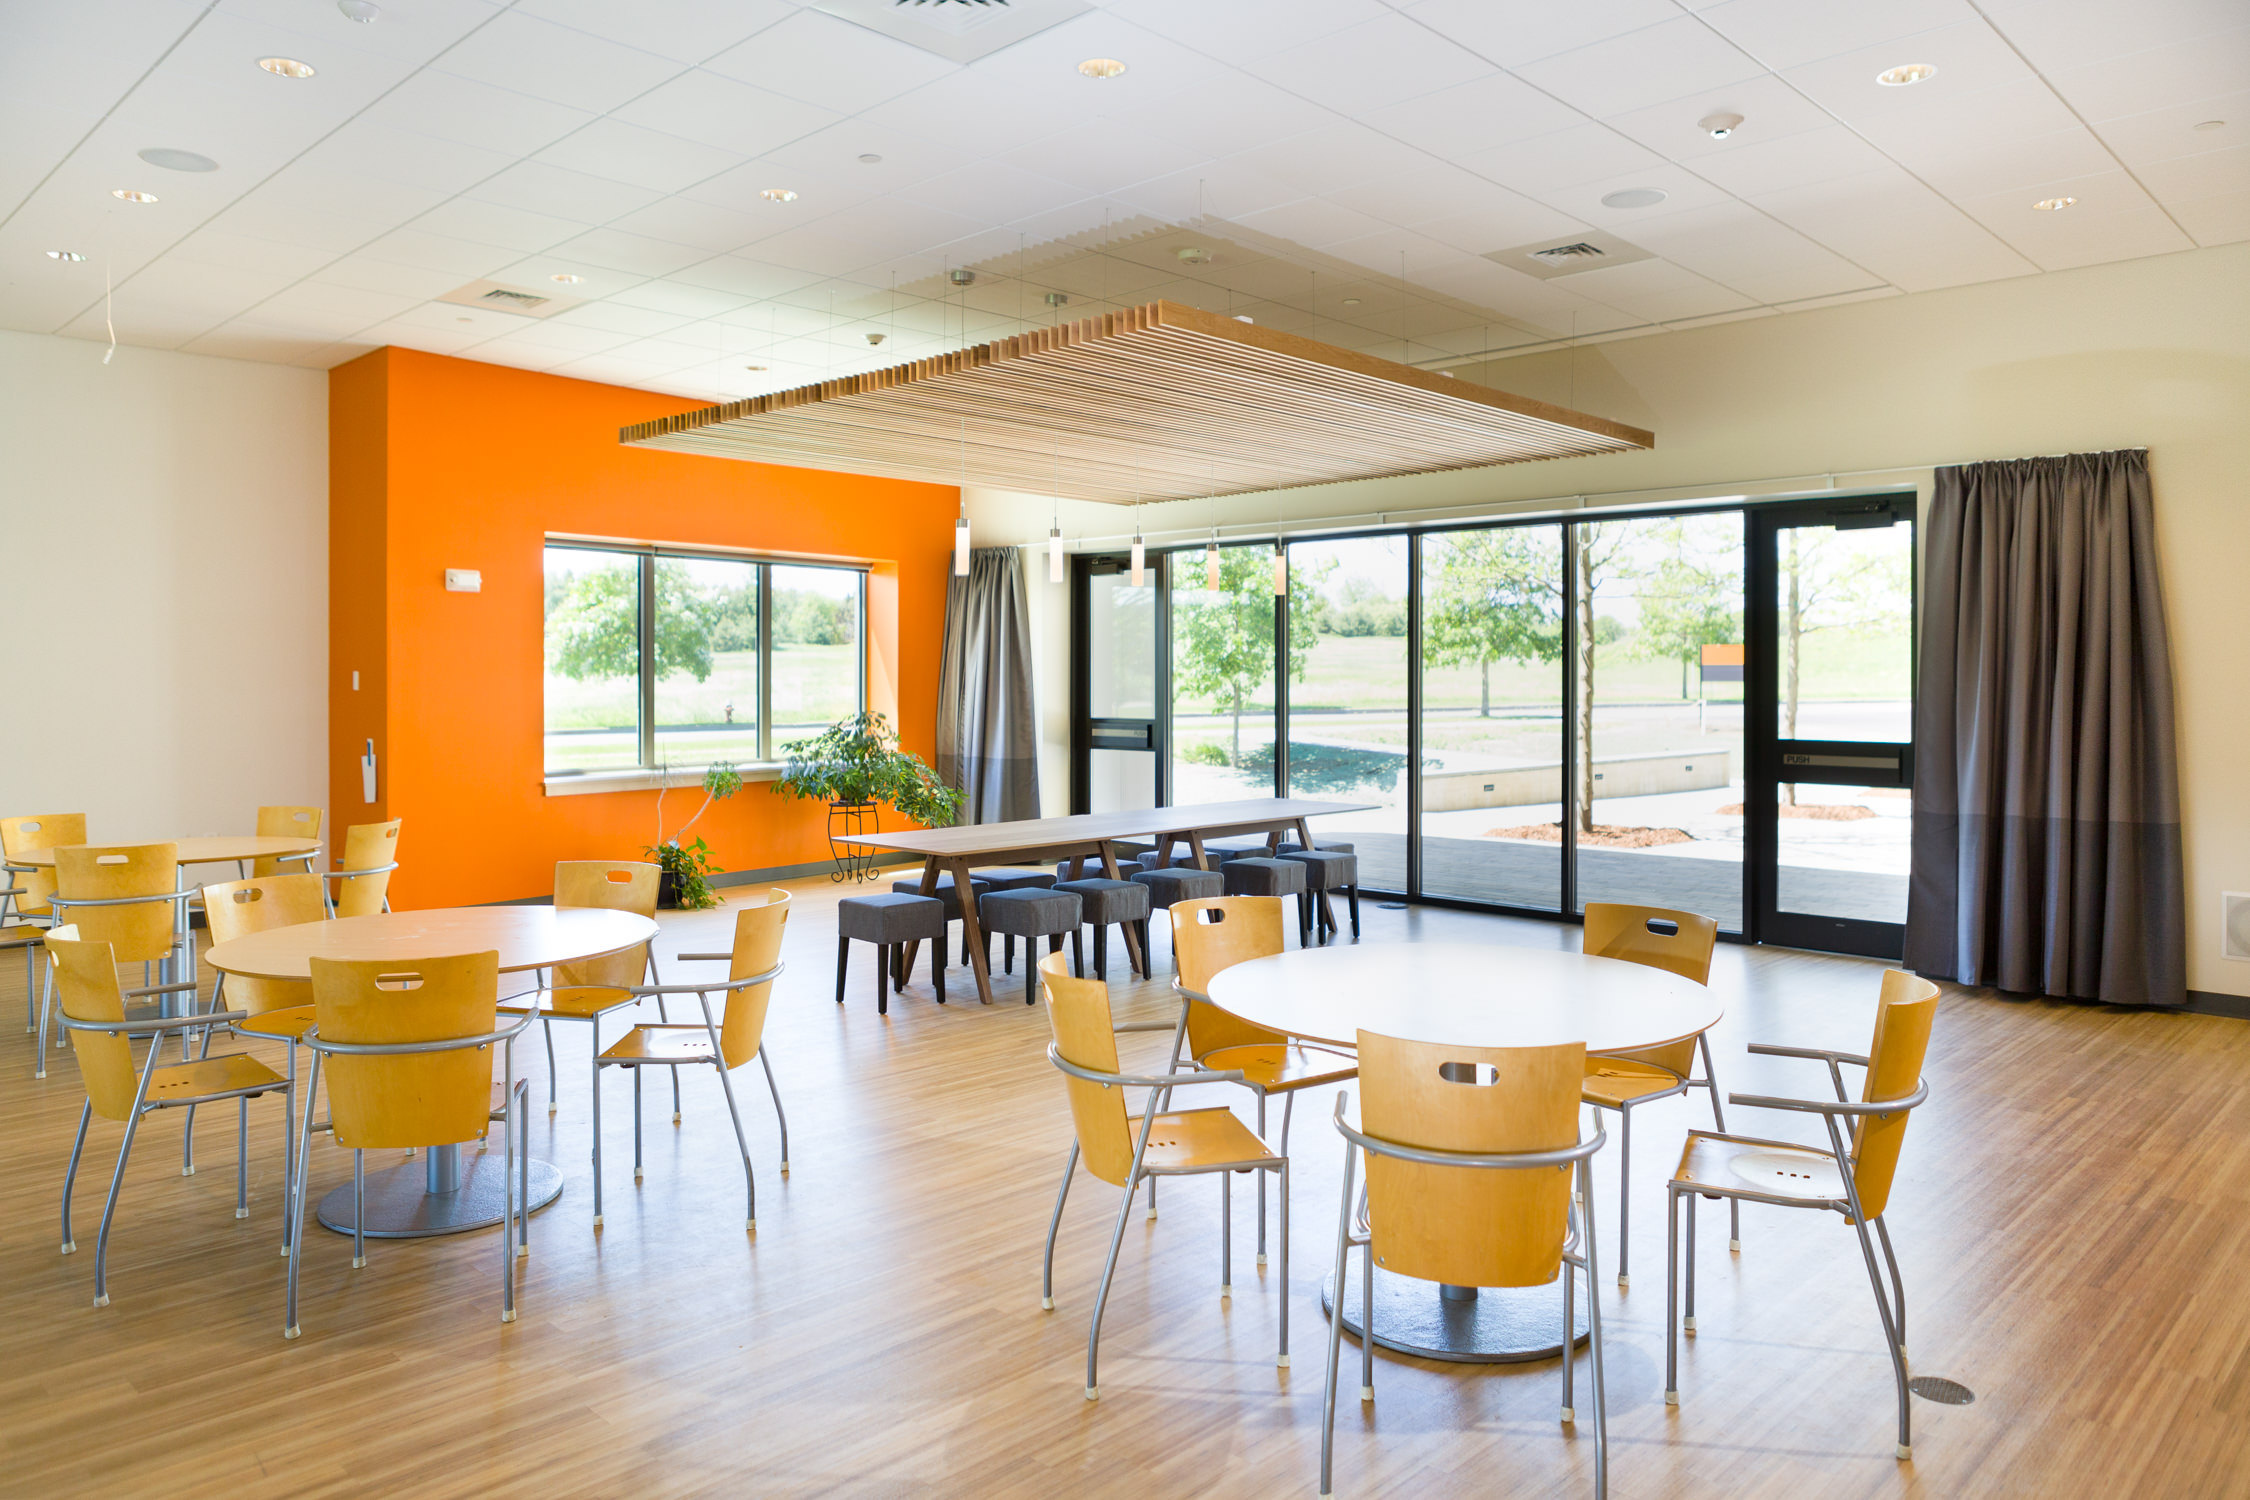 Photo of cafeteria in Logic Supply building addition for Neagley & Chase Construction Company by Vermont architecture photographer Stina Booth of Studio SB.